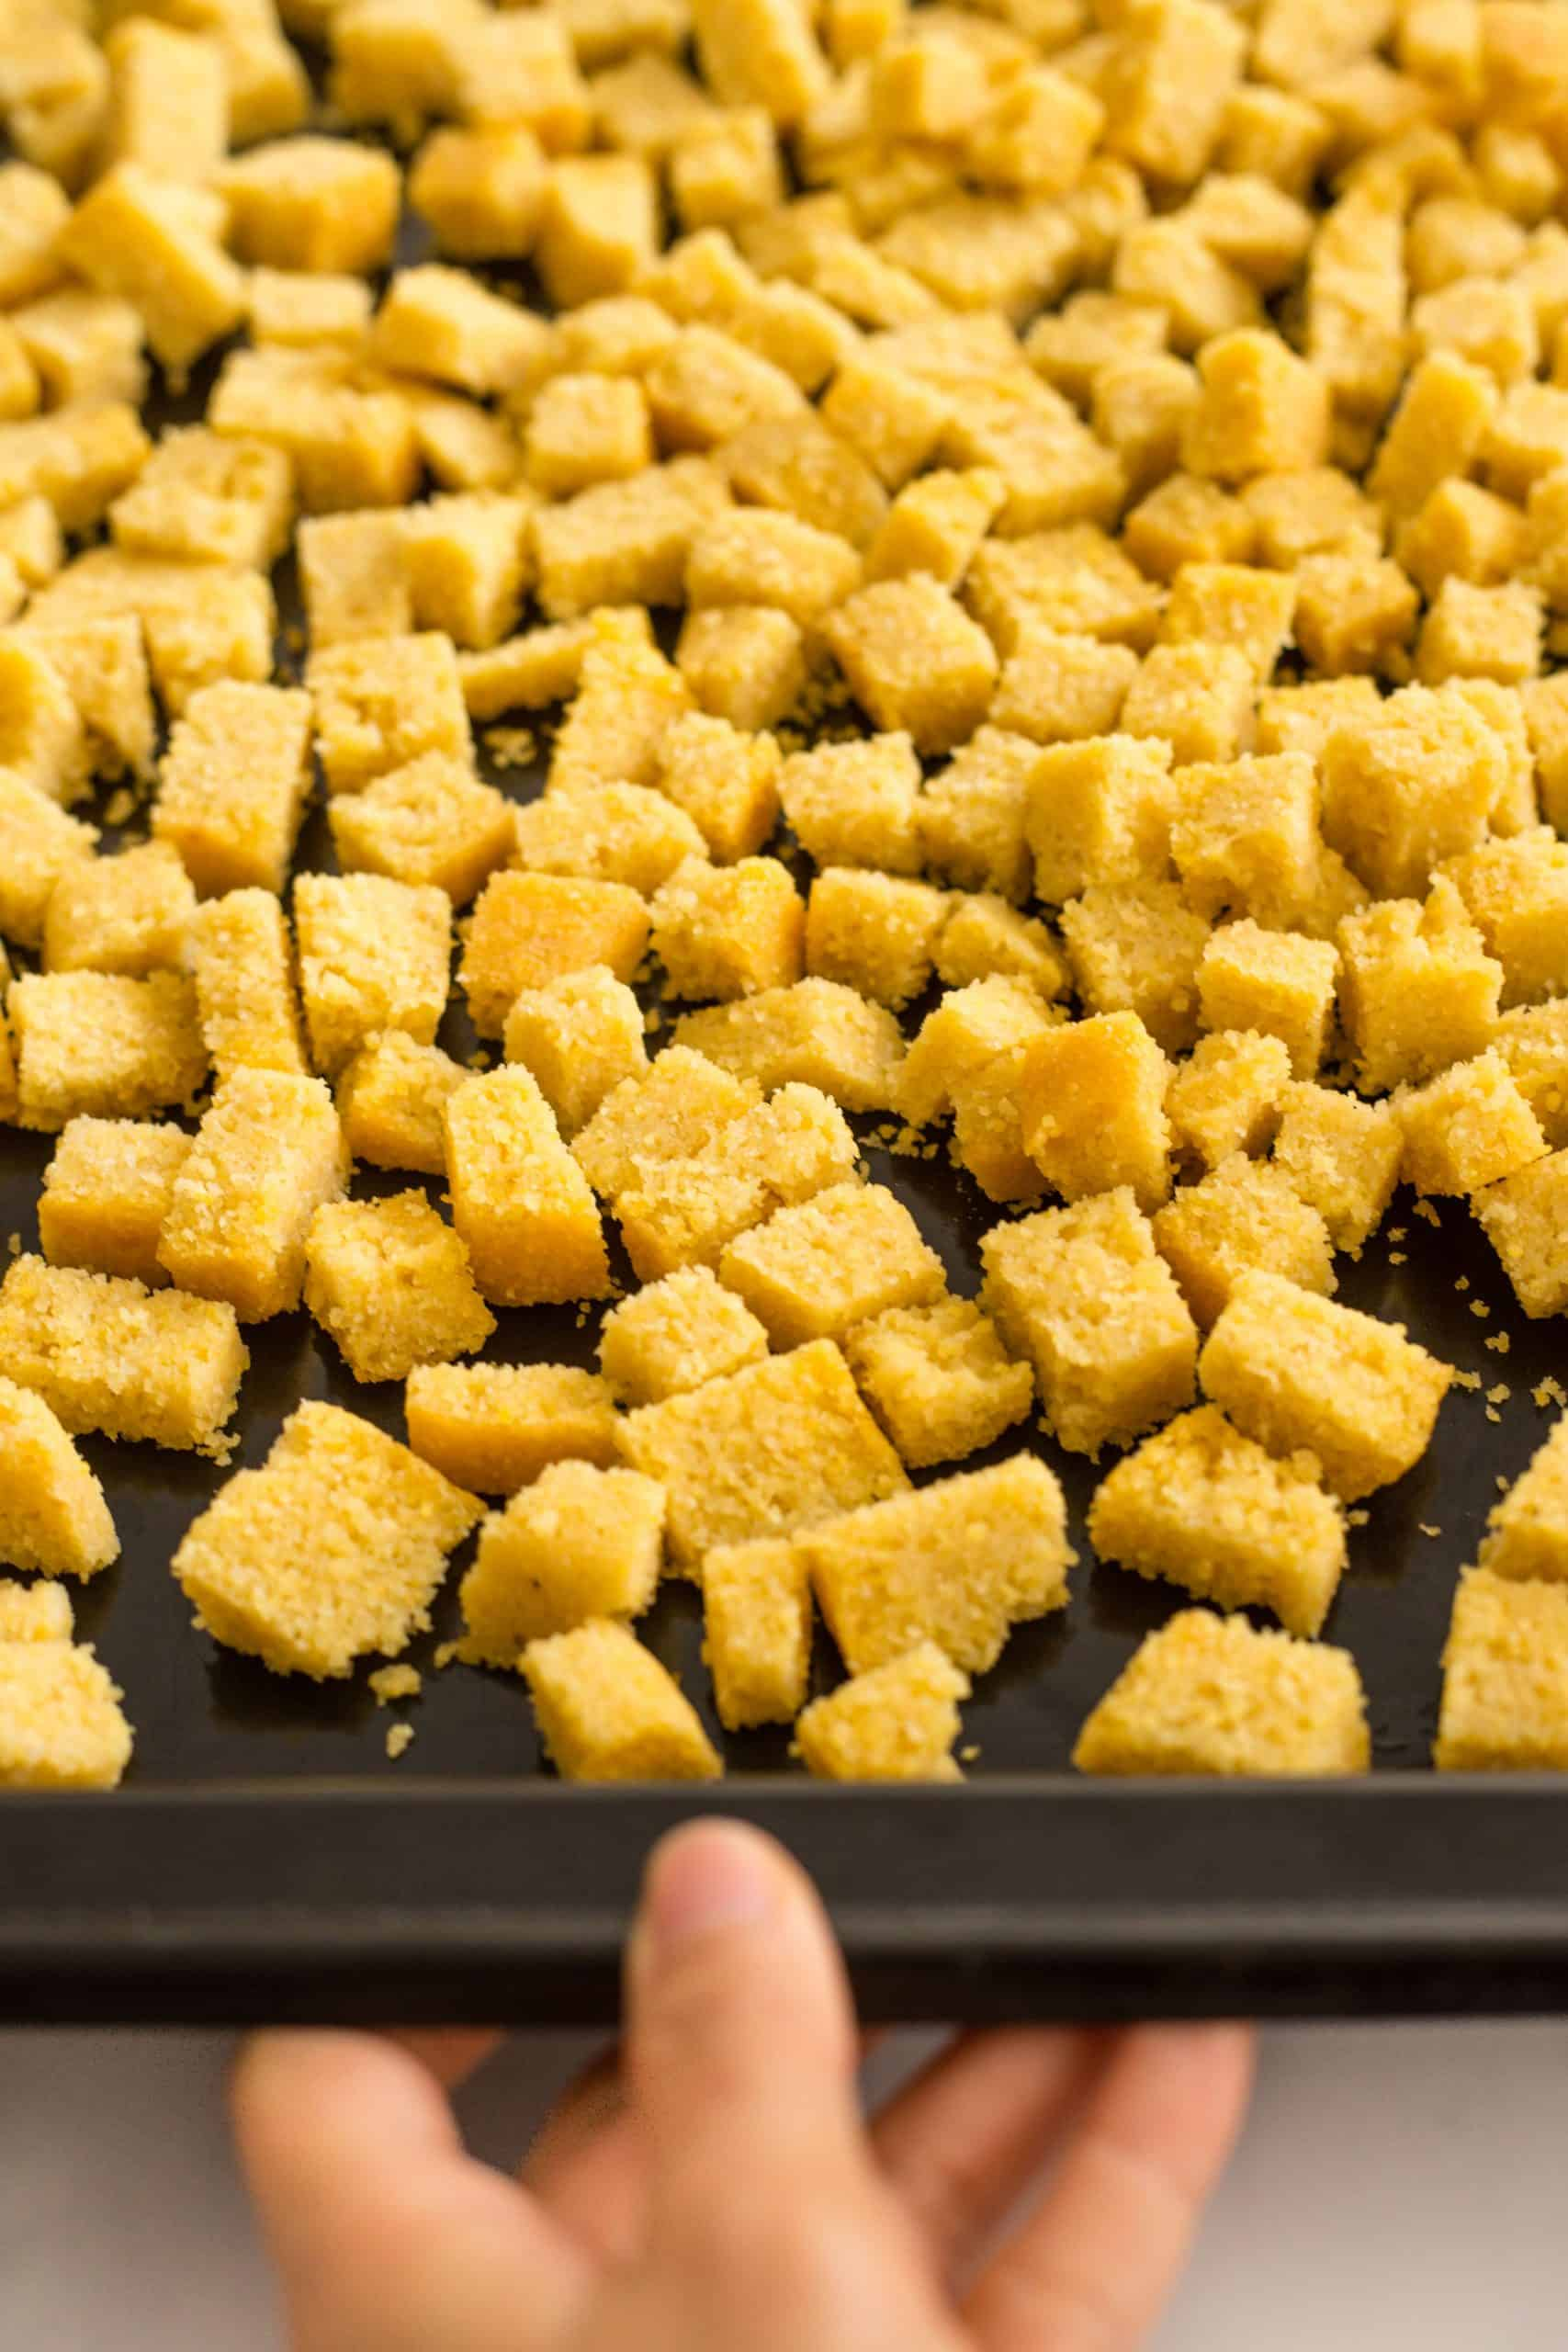 Hand holding a baking pan full of cubed cornbread.